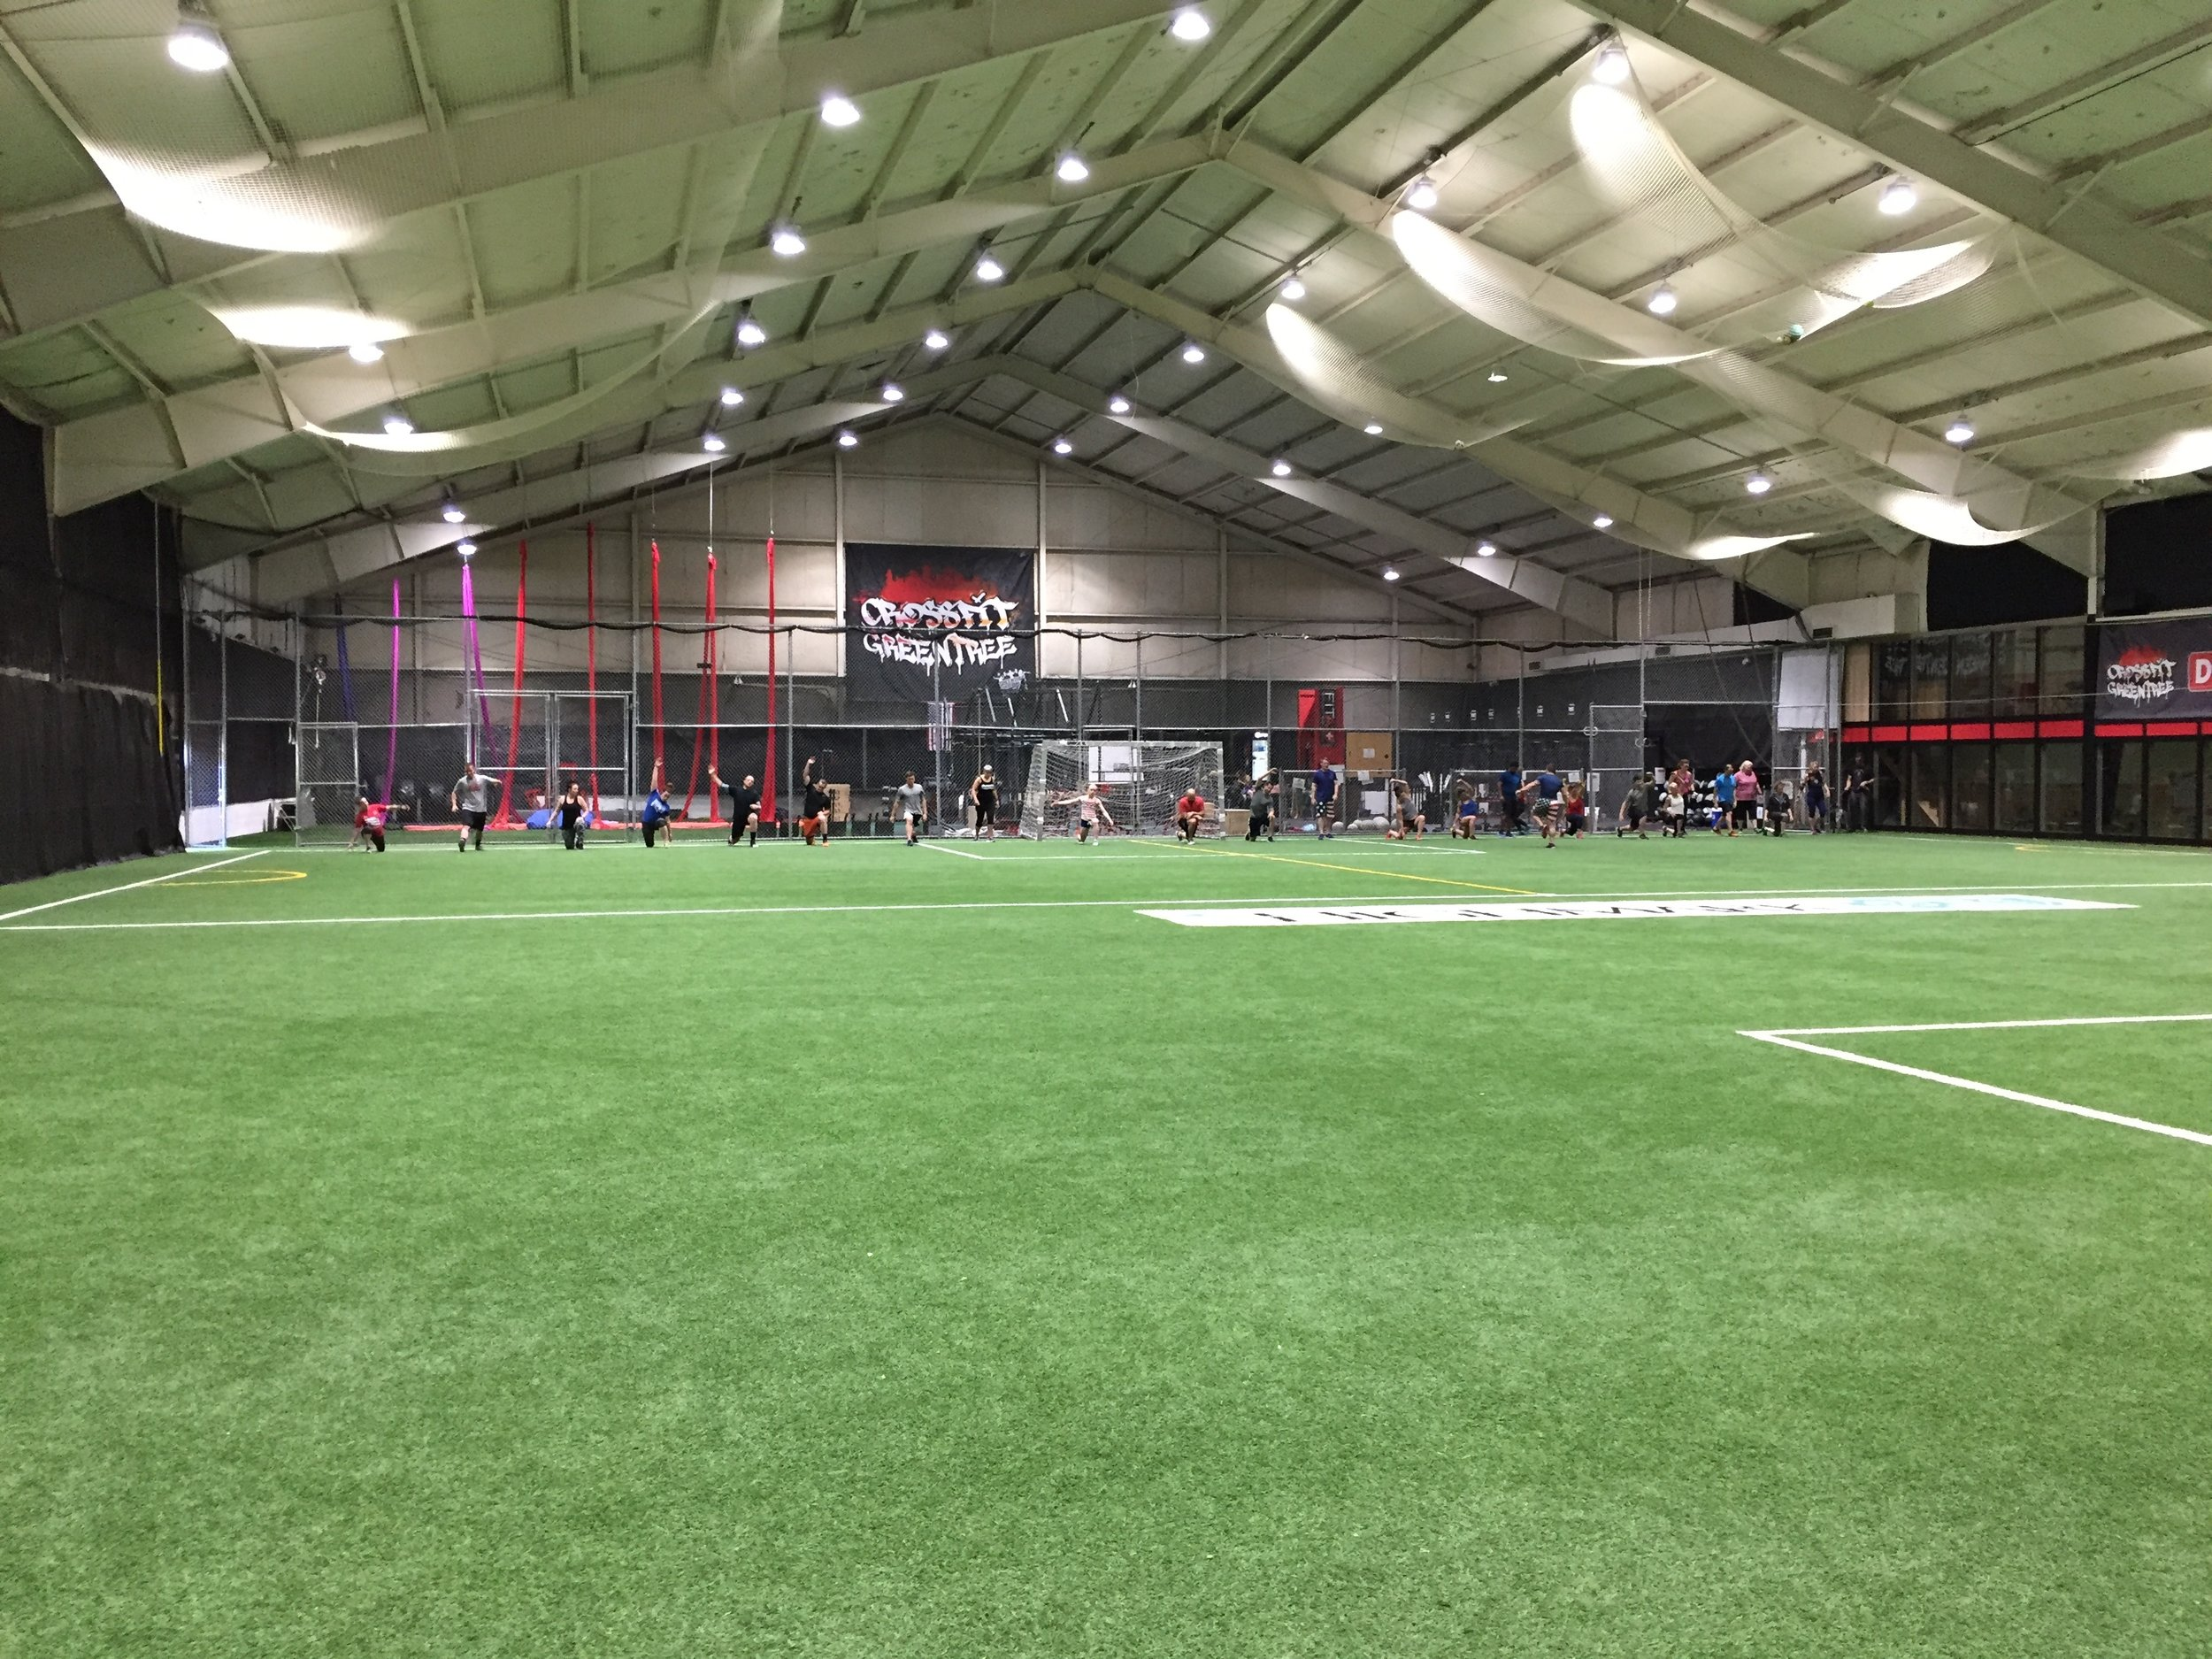 Fitness Field - Rates:Dimensions:How to book a time slot on this field: